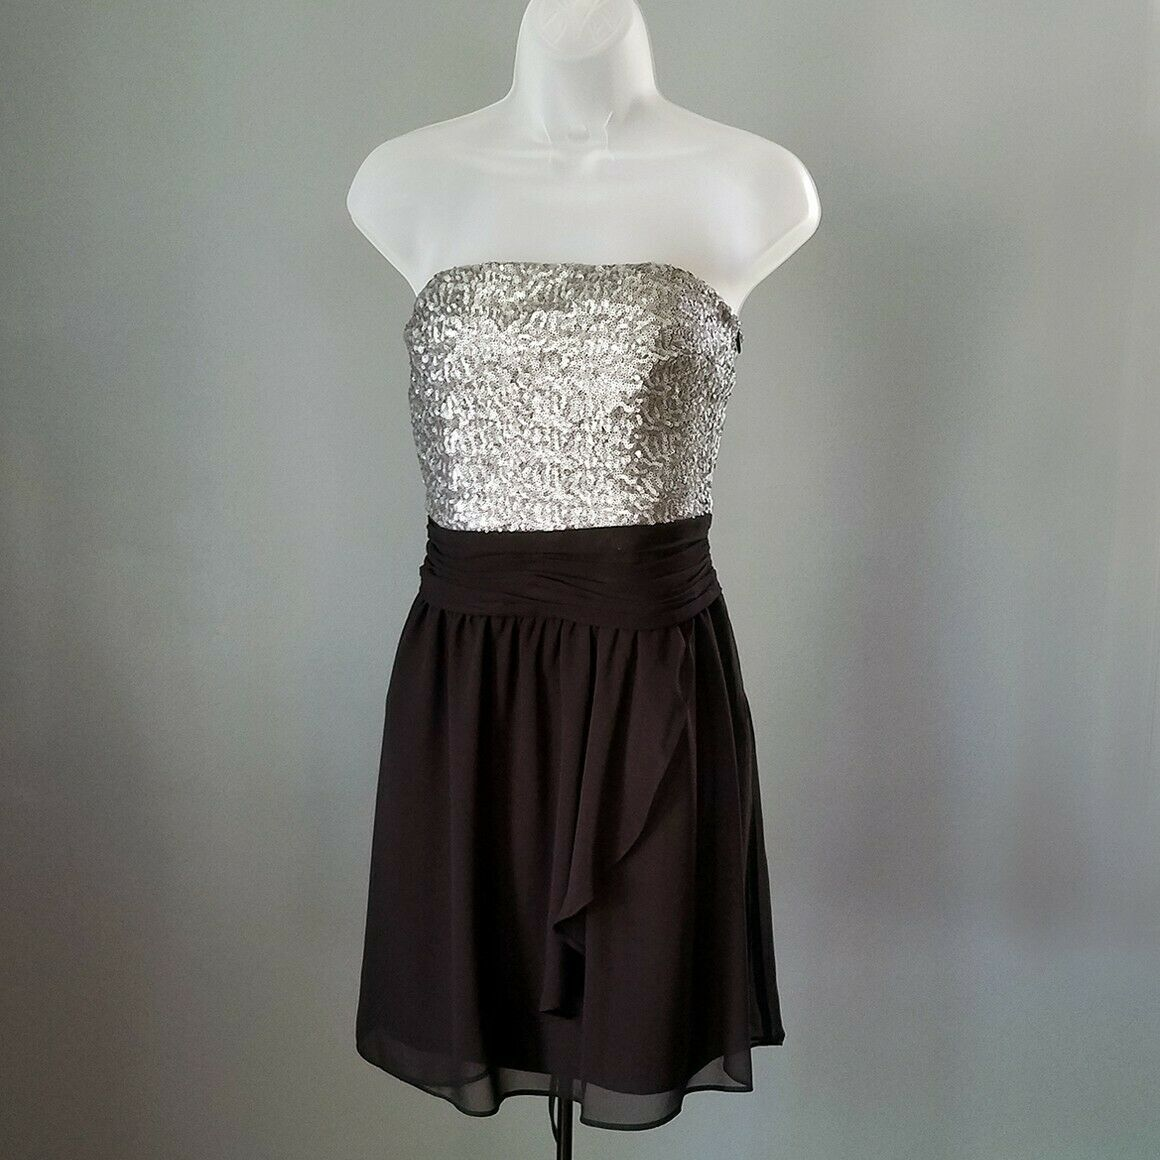 Express Silver & Black Sequin Strapless Cocktail Dress Size 6 image 3